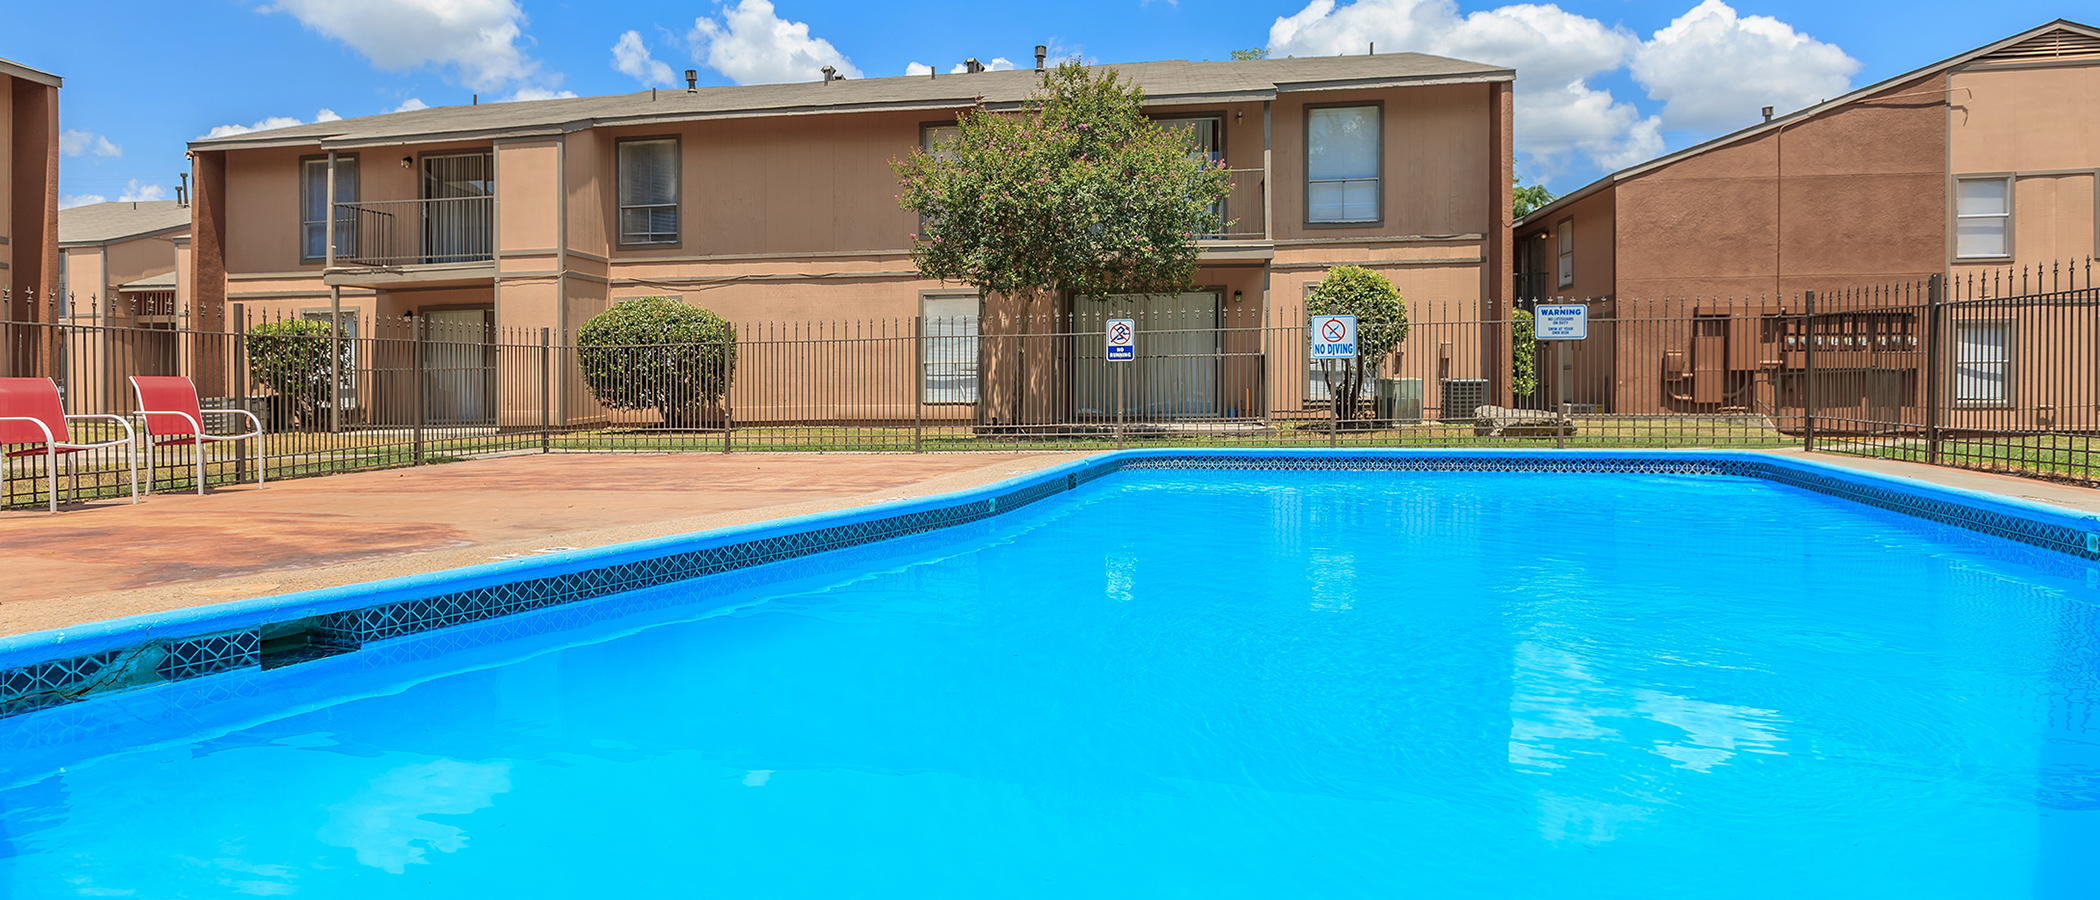 Country Oaks Apartments slideshow image 3